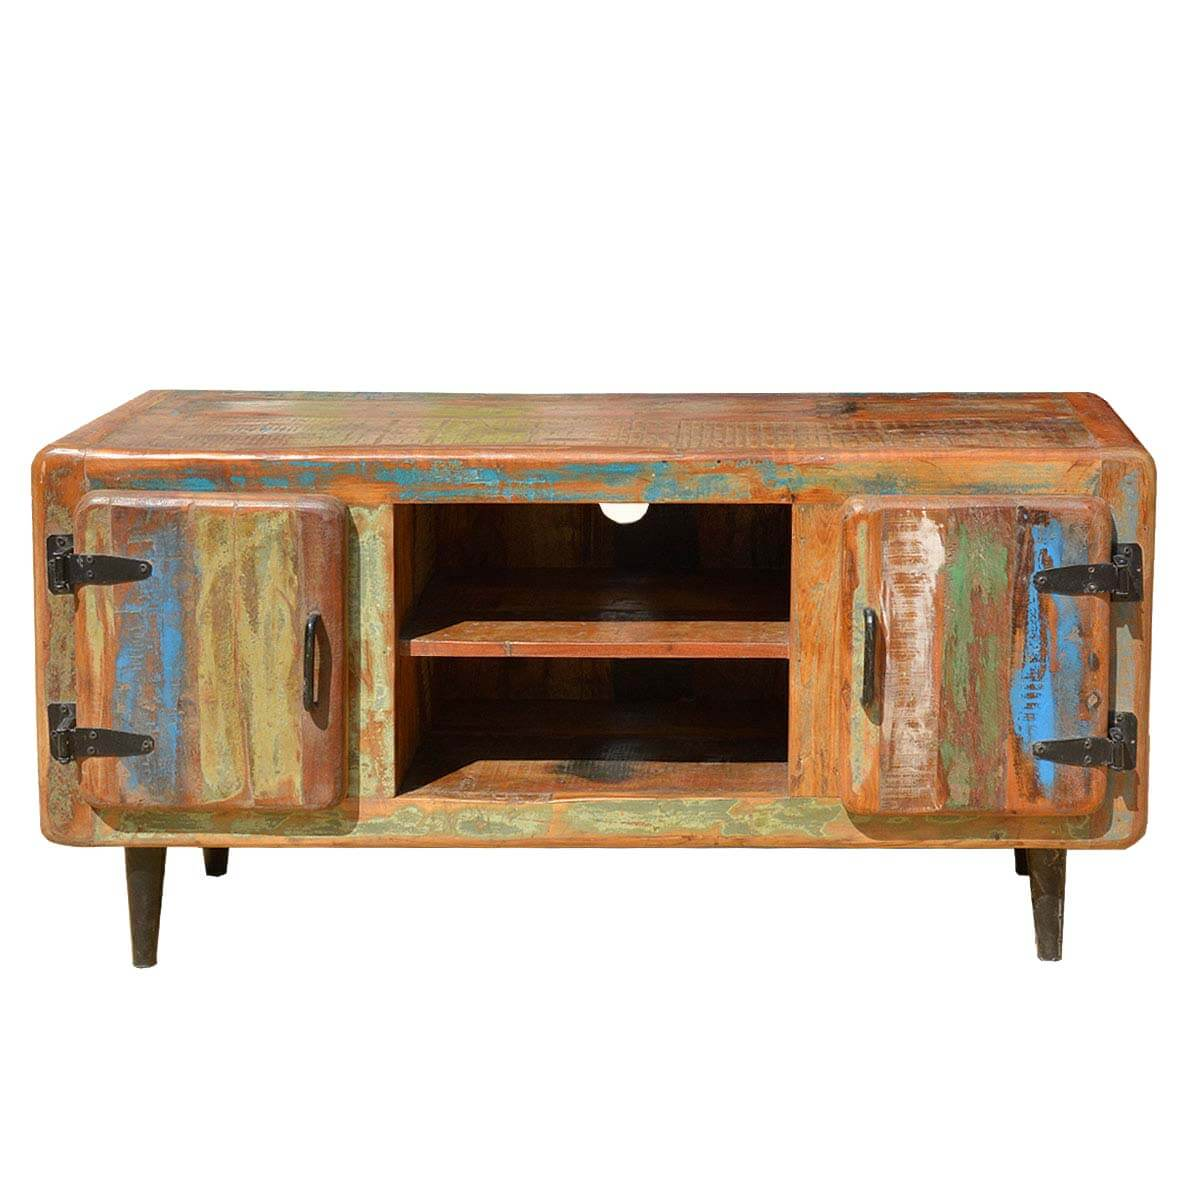 Rustic Reclaimed Wood Retro Industrial Media Stand And Console